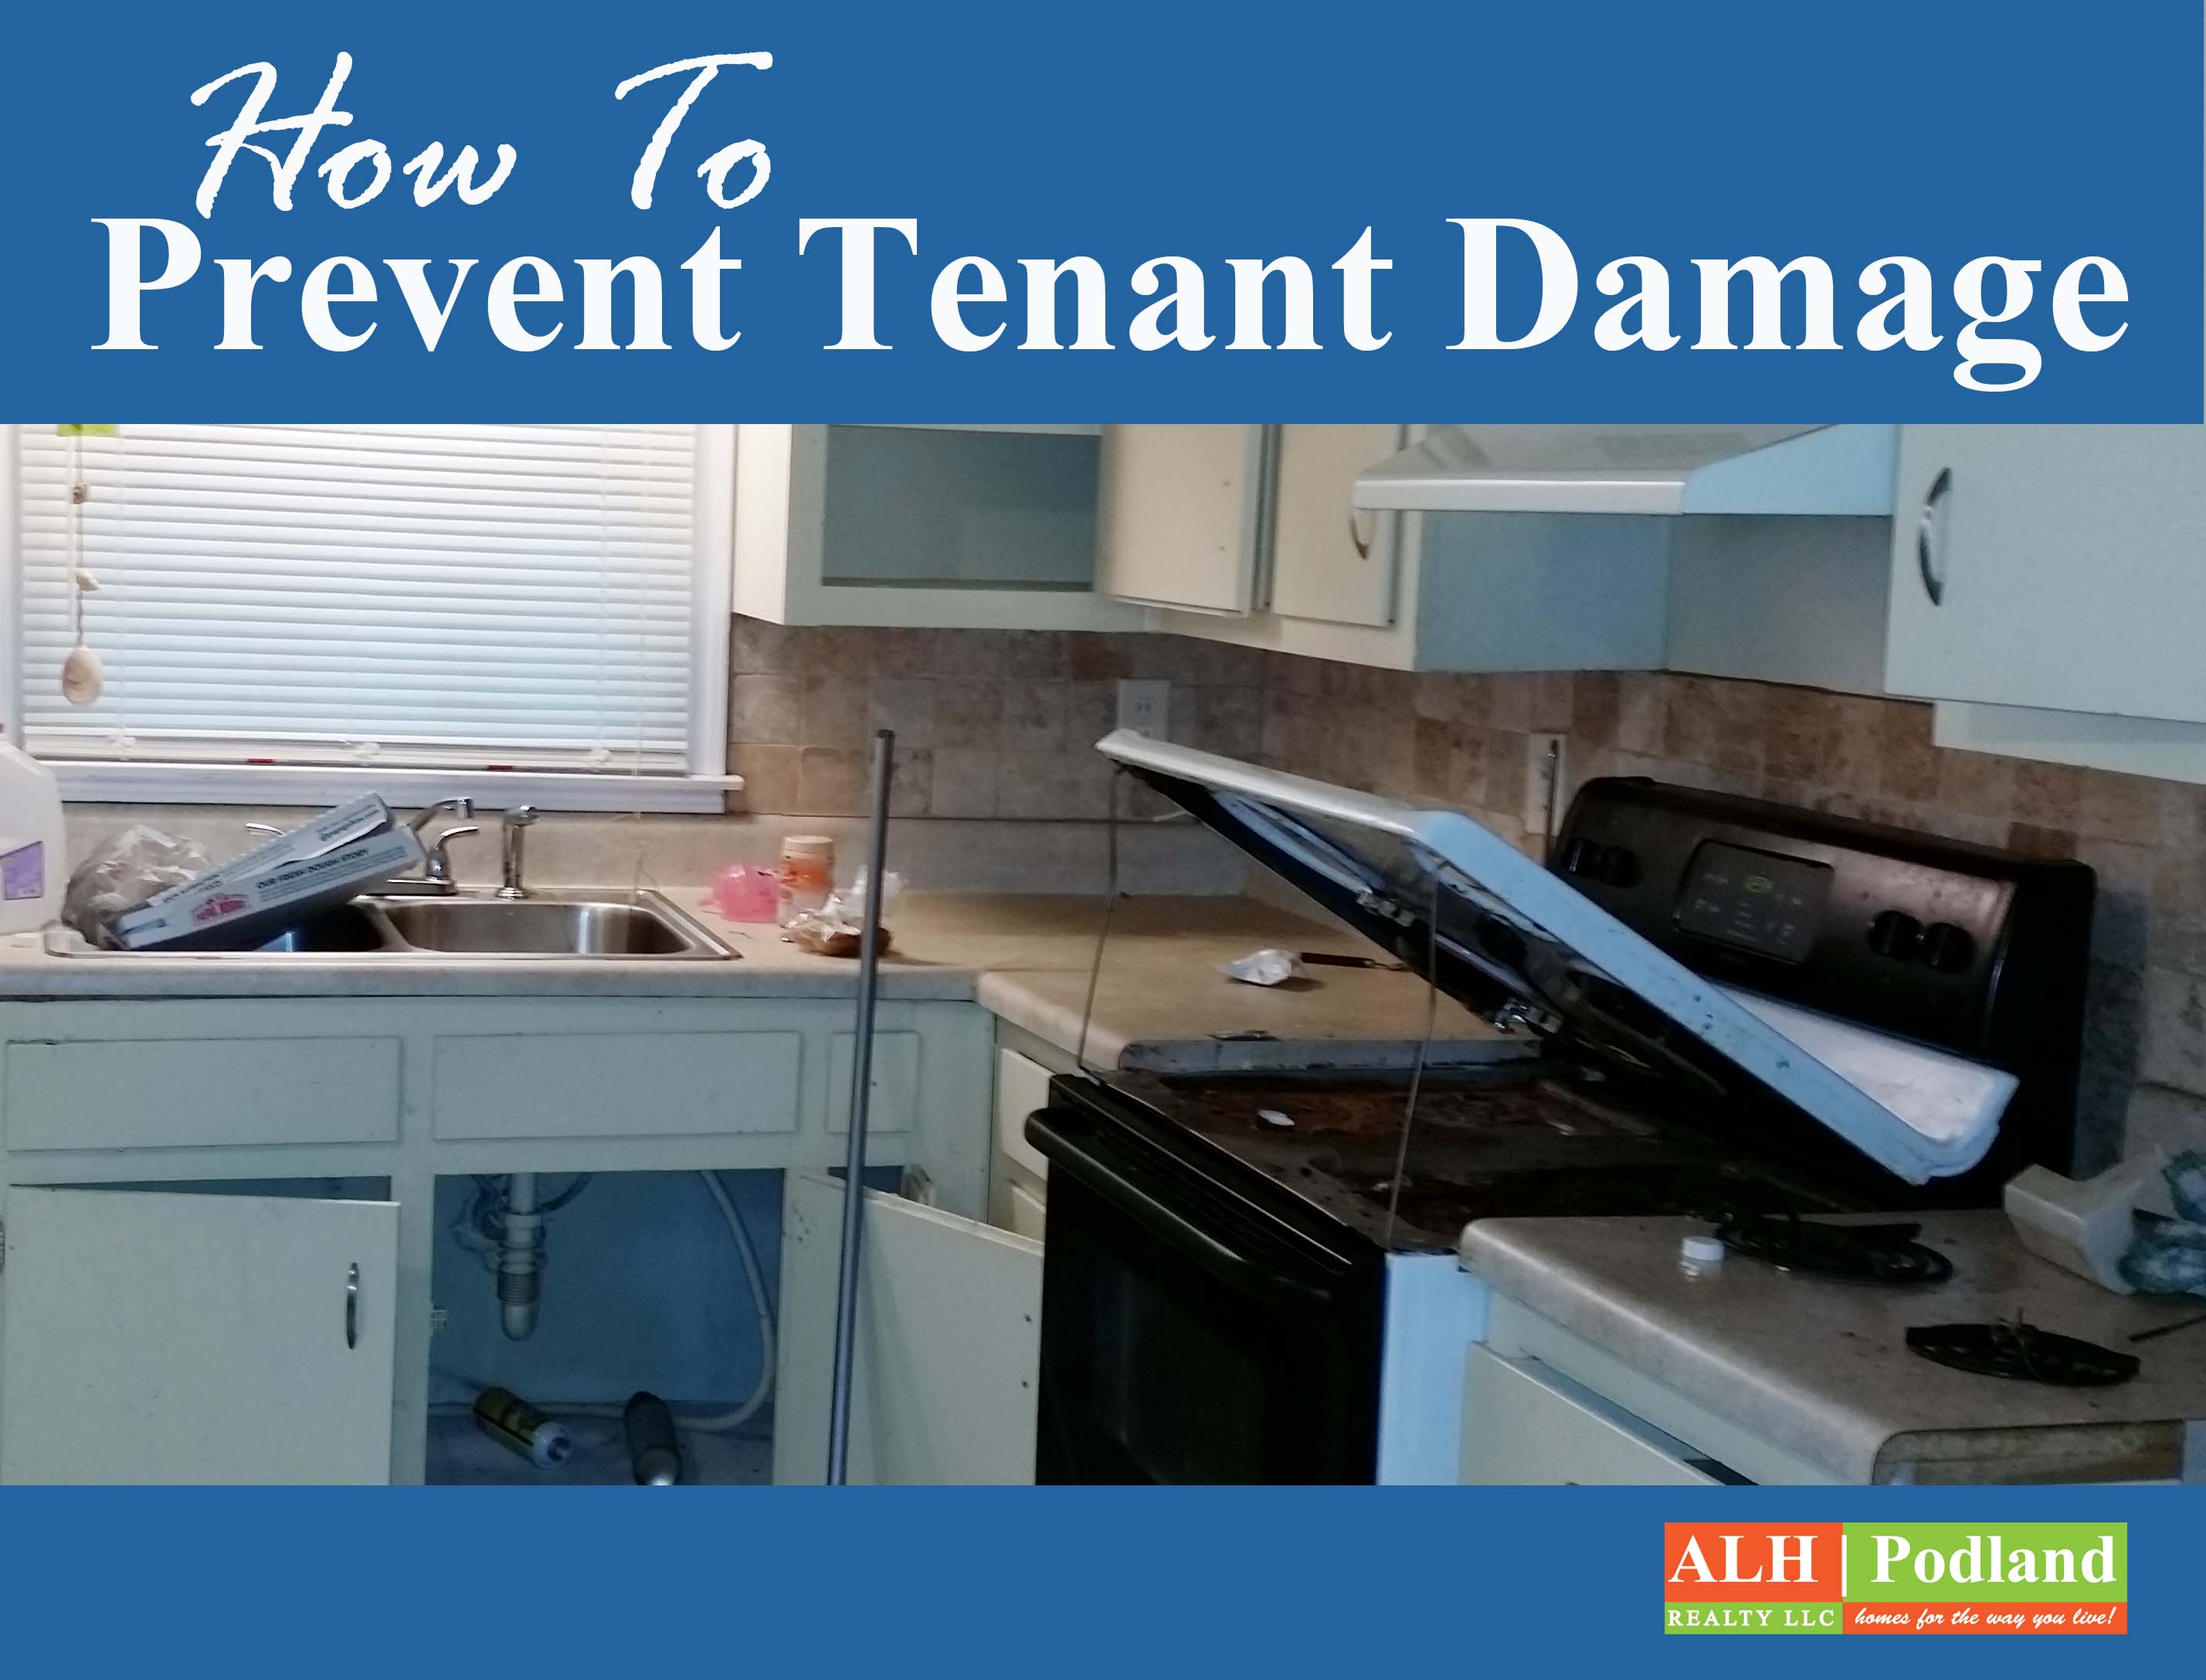 Atlanta Property Management Advice How To Prevent Tenant